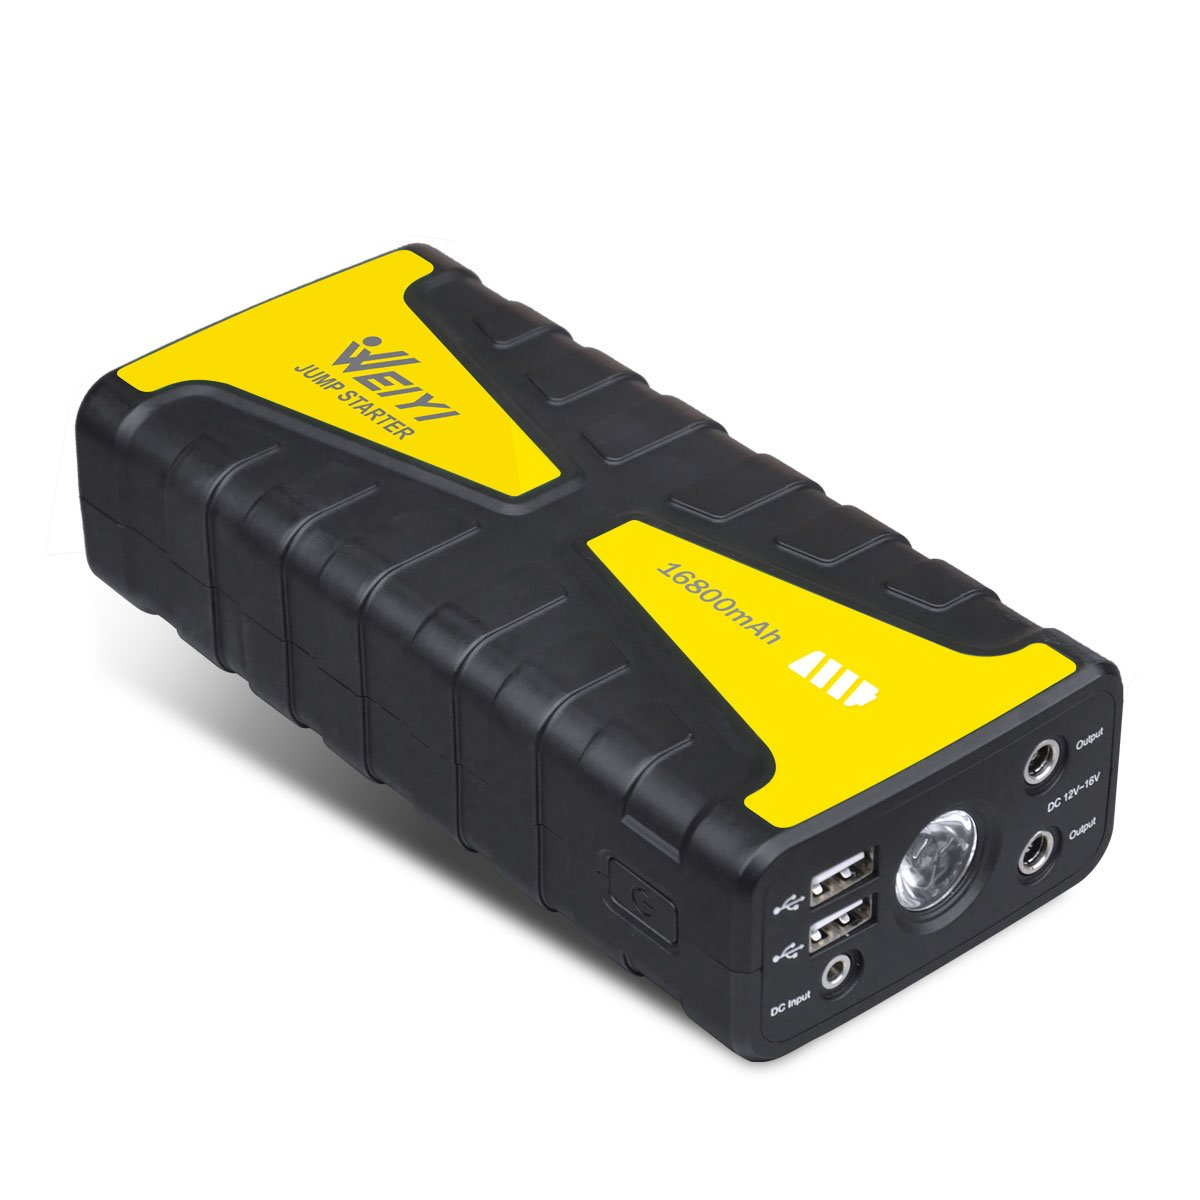 Weiyi 800A Peak Current 16800mAh Portable Car Jump